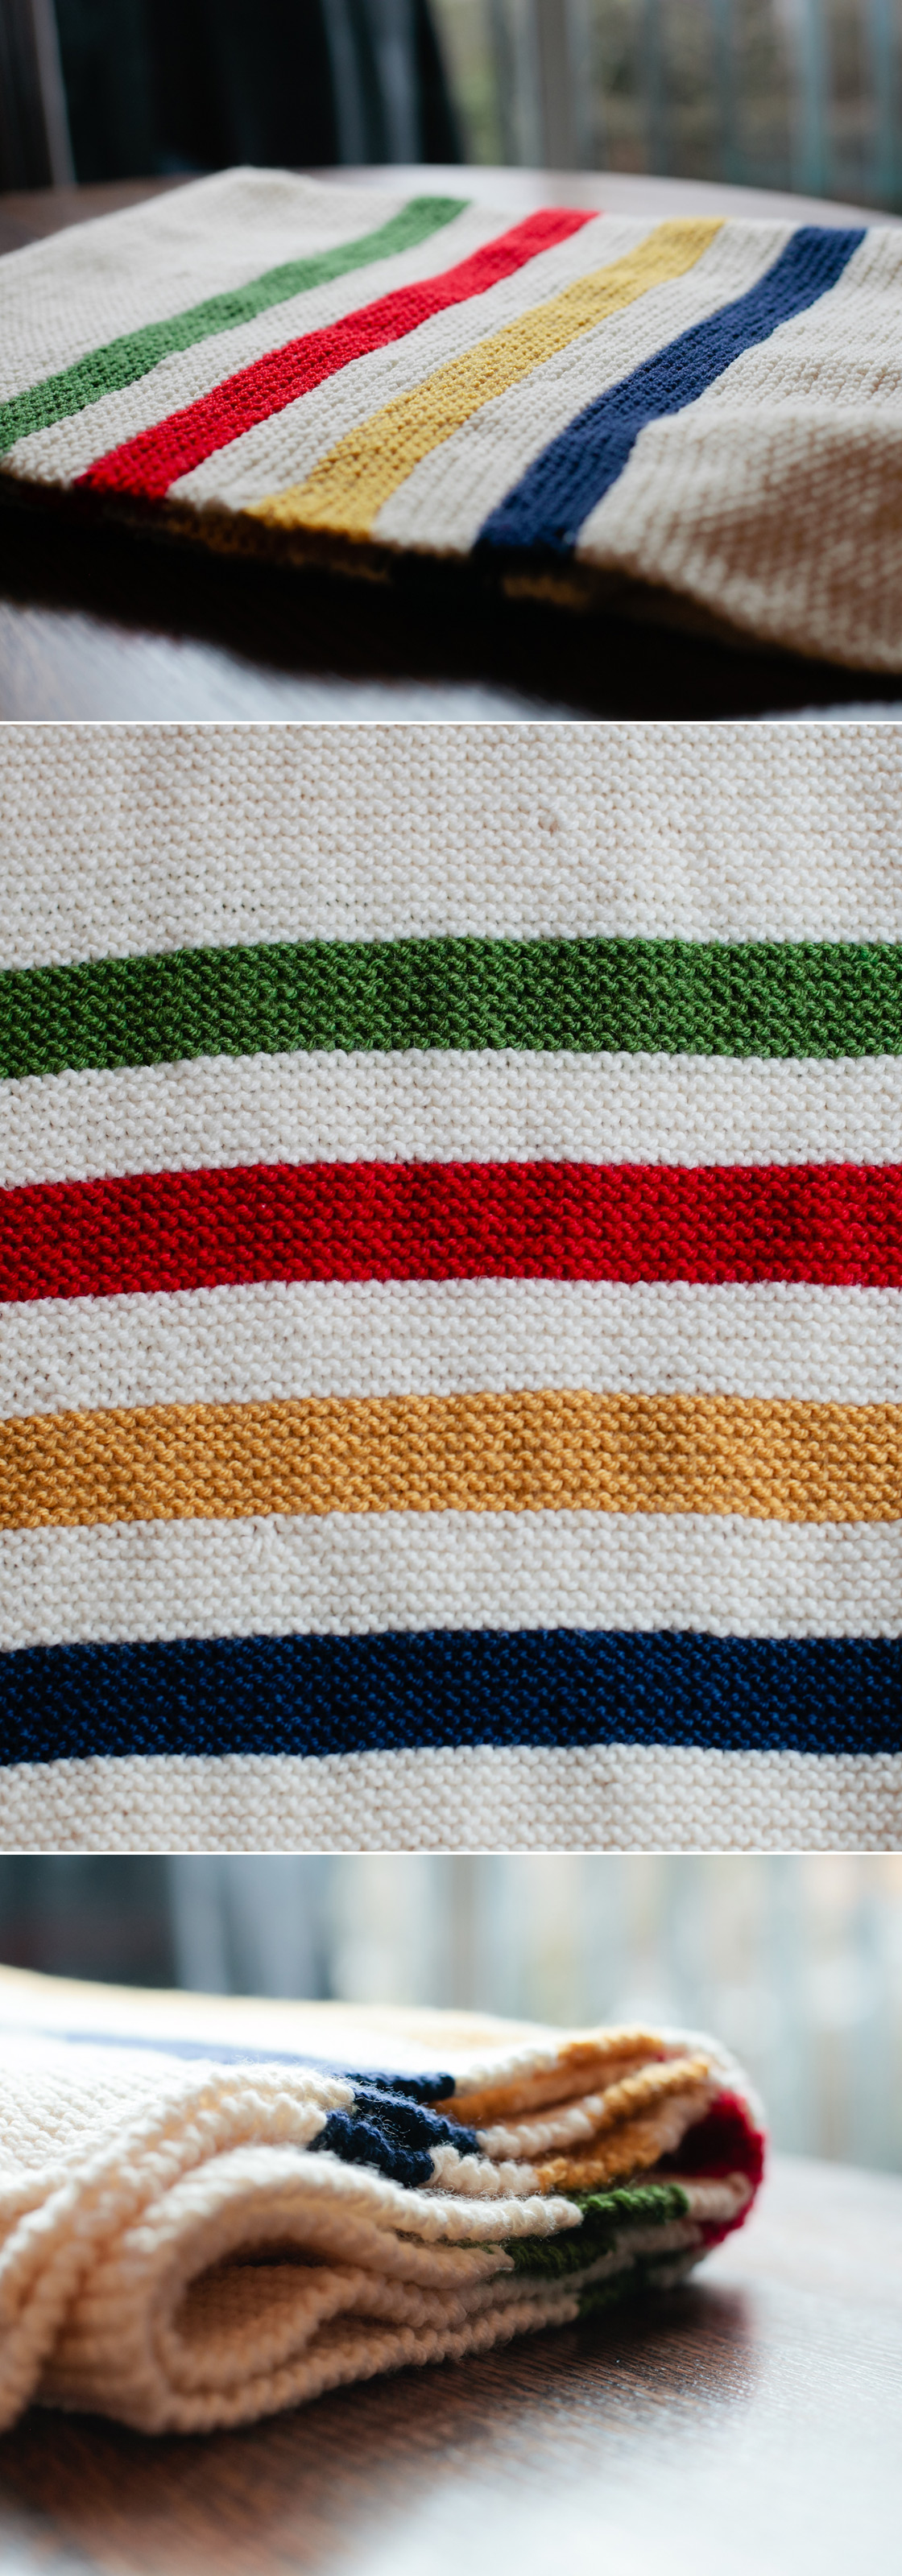 Knitting Pattern For Hudson Bay Blanket : DIY: Hand-knit Hudson s Bay Baby Blanket .liveit.loveit ...